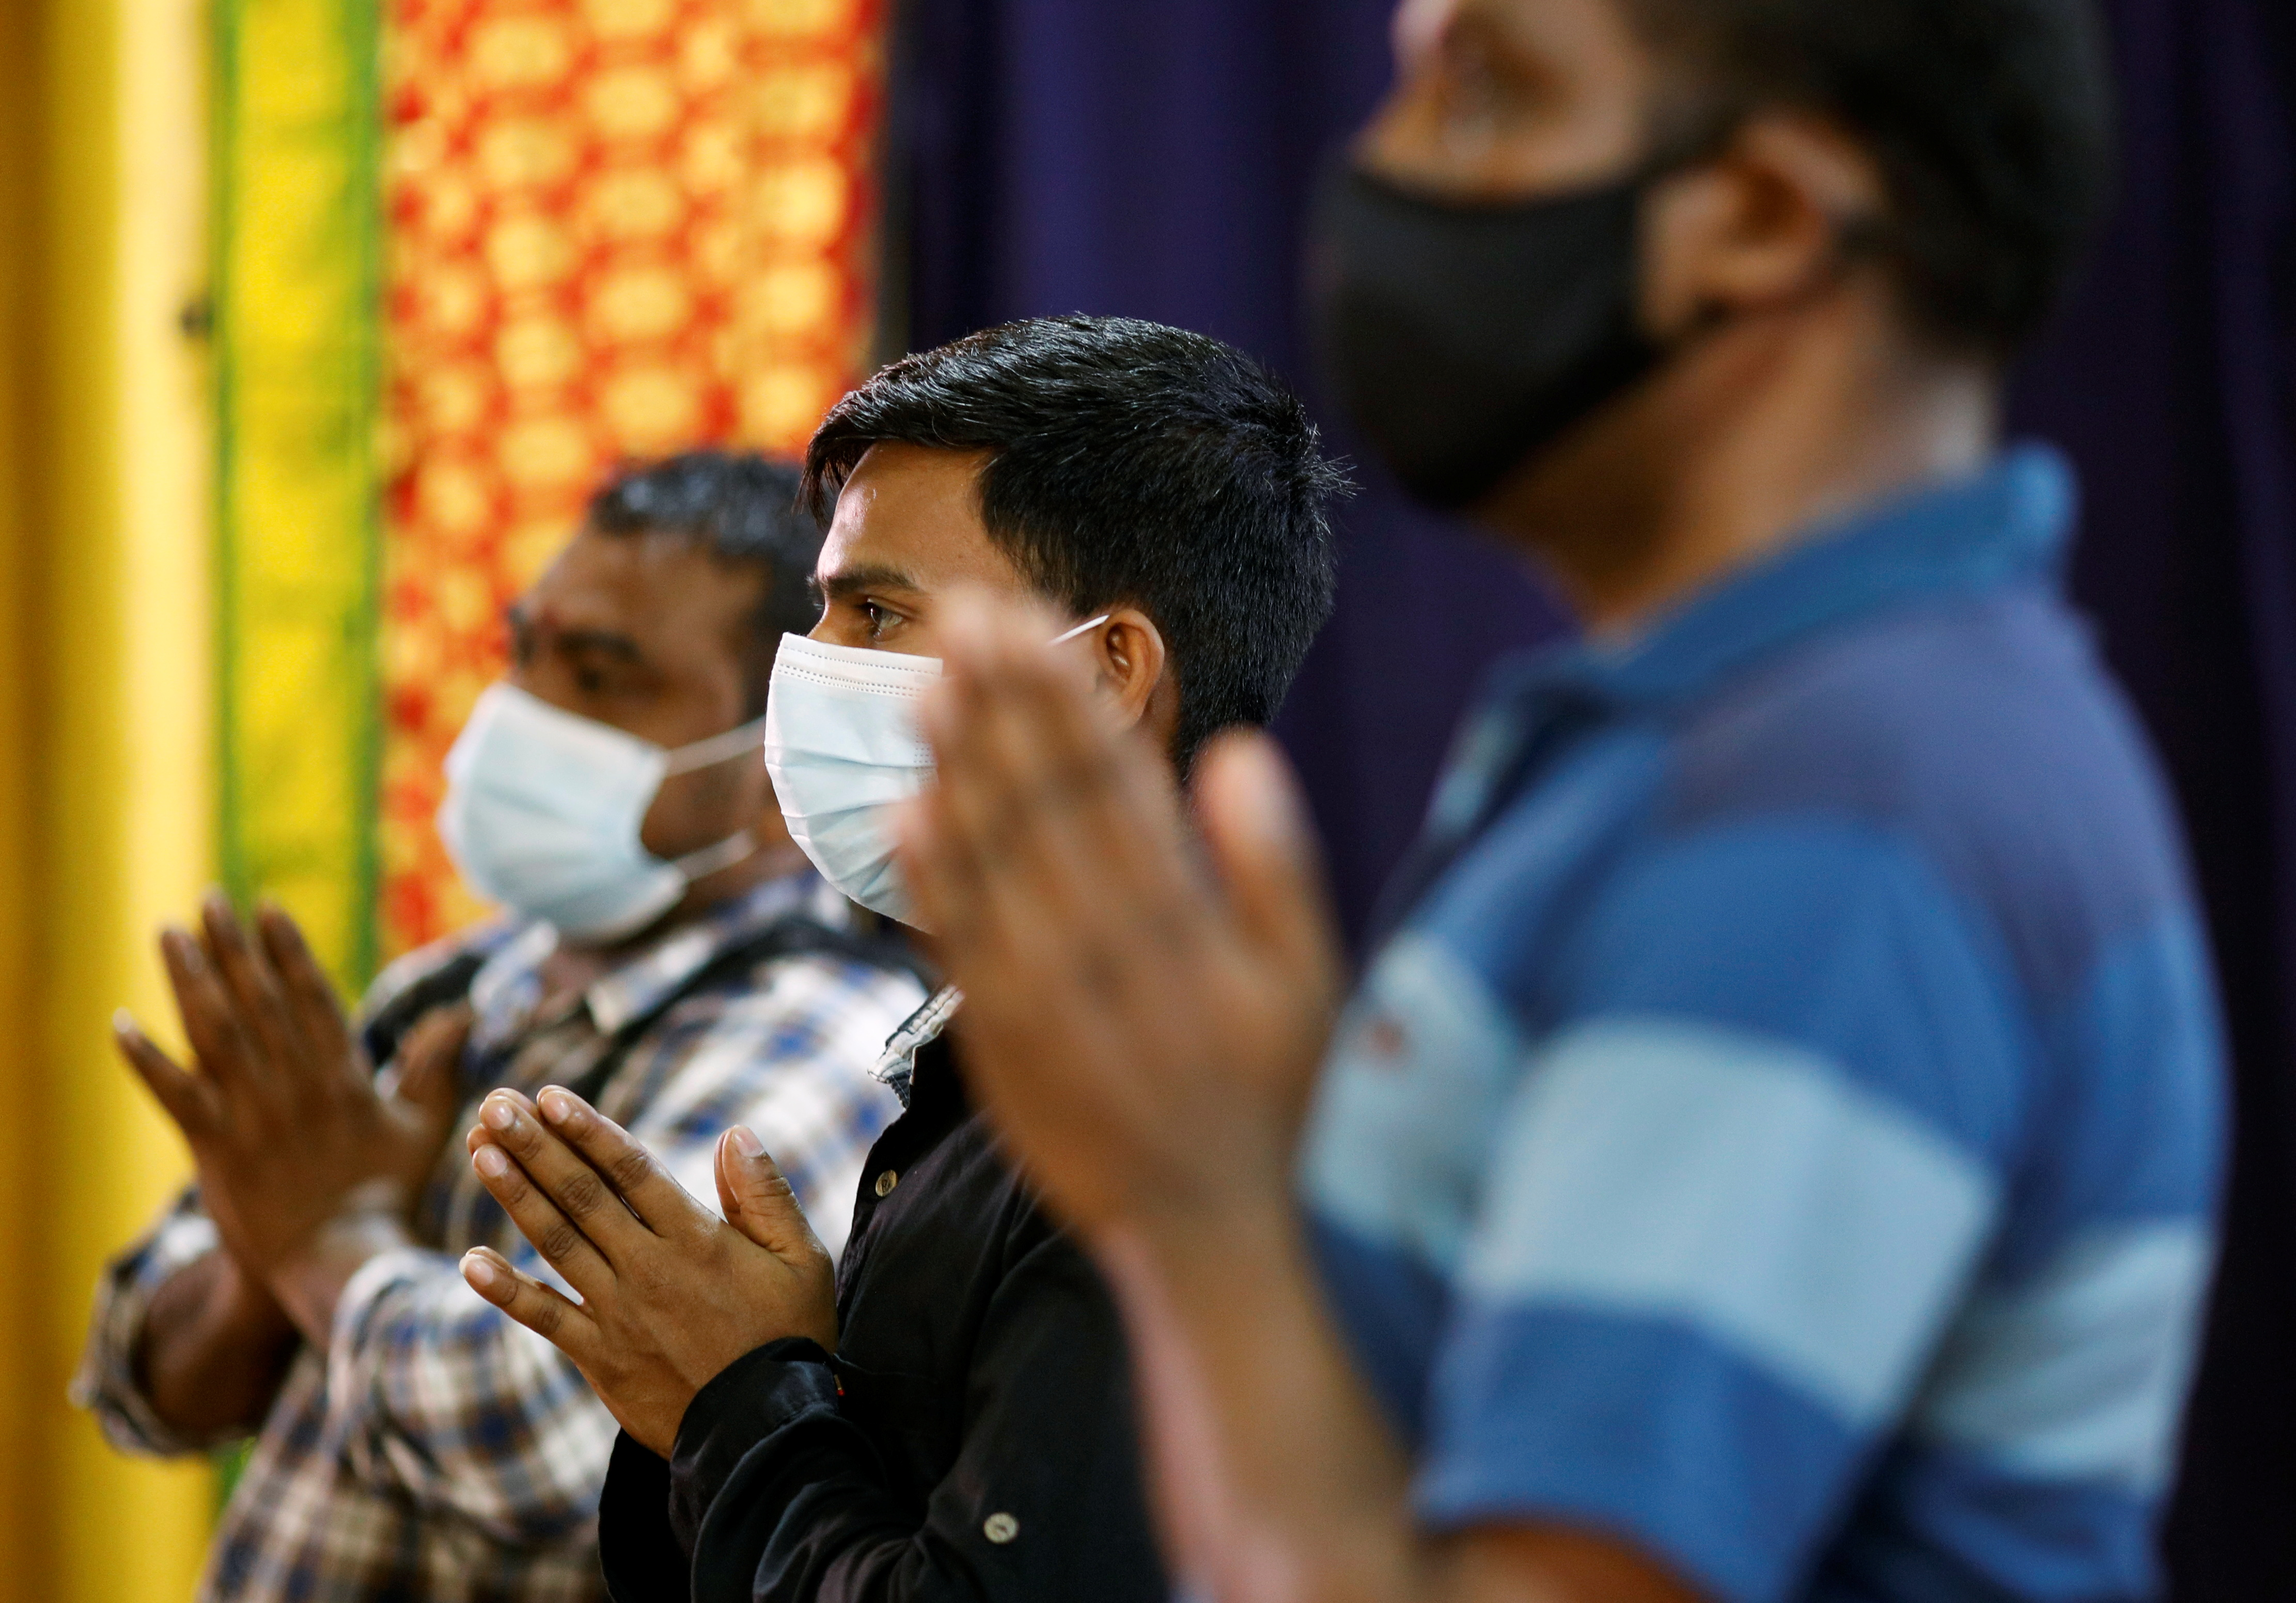 Migrant workers pray at a temple, before enjoying time off at Little India, as part of a pilot programme to allow fully vaccinated migrant workers back to the community after more than a year of movement curbs due to the coronavirus disease (COVID-19) outbreak, in Singapore September 15, 2021. REUTERS/Edgar Su